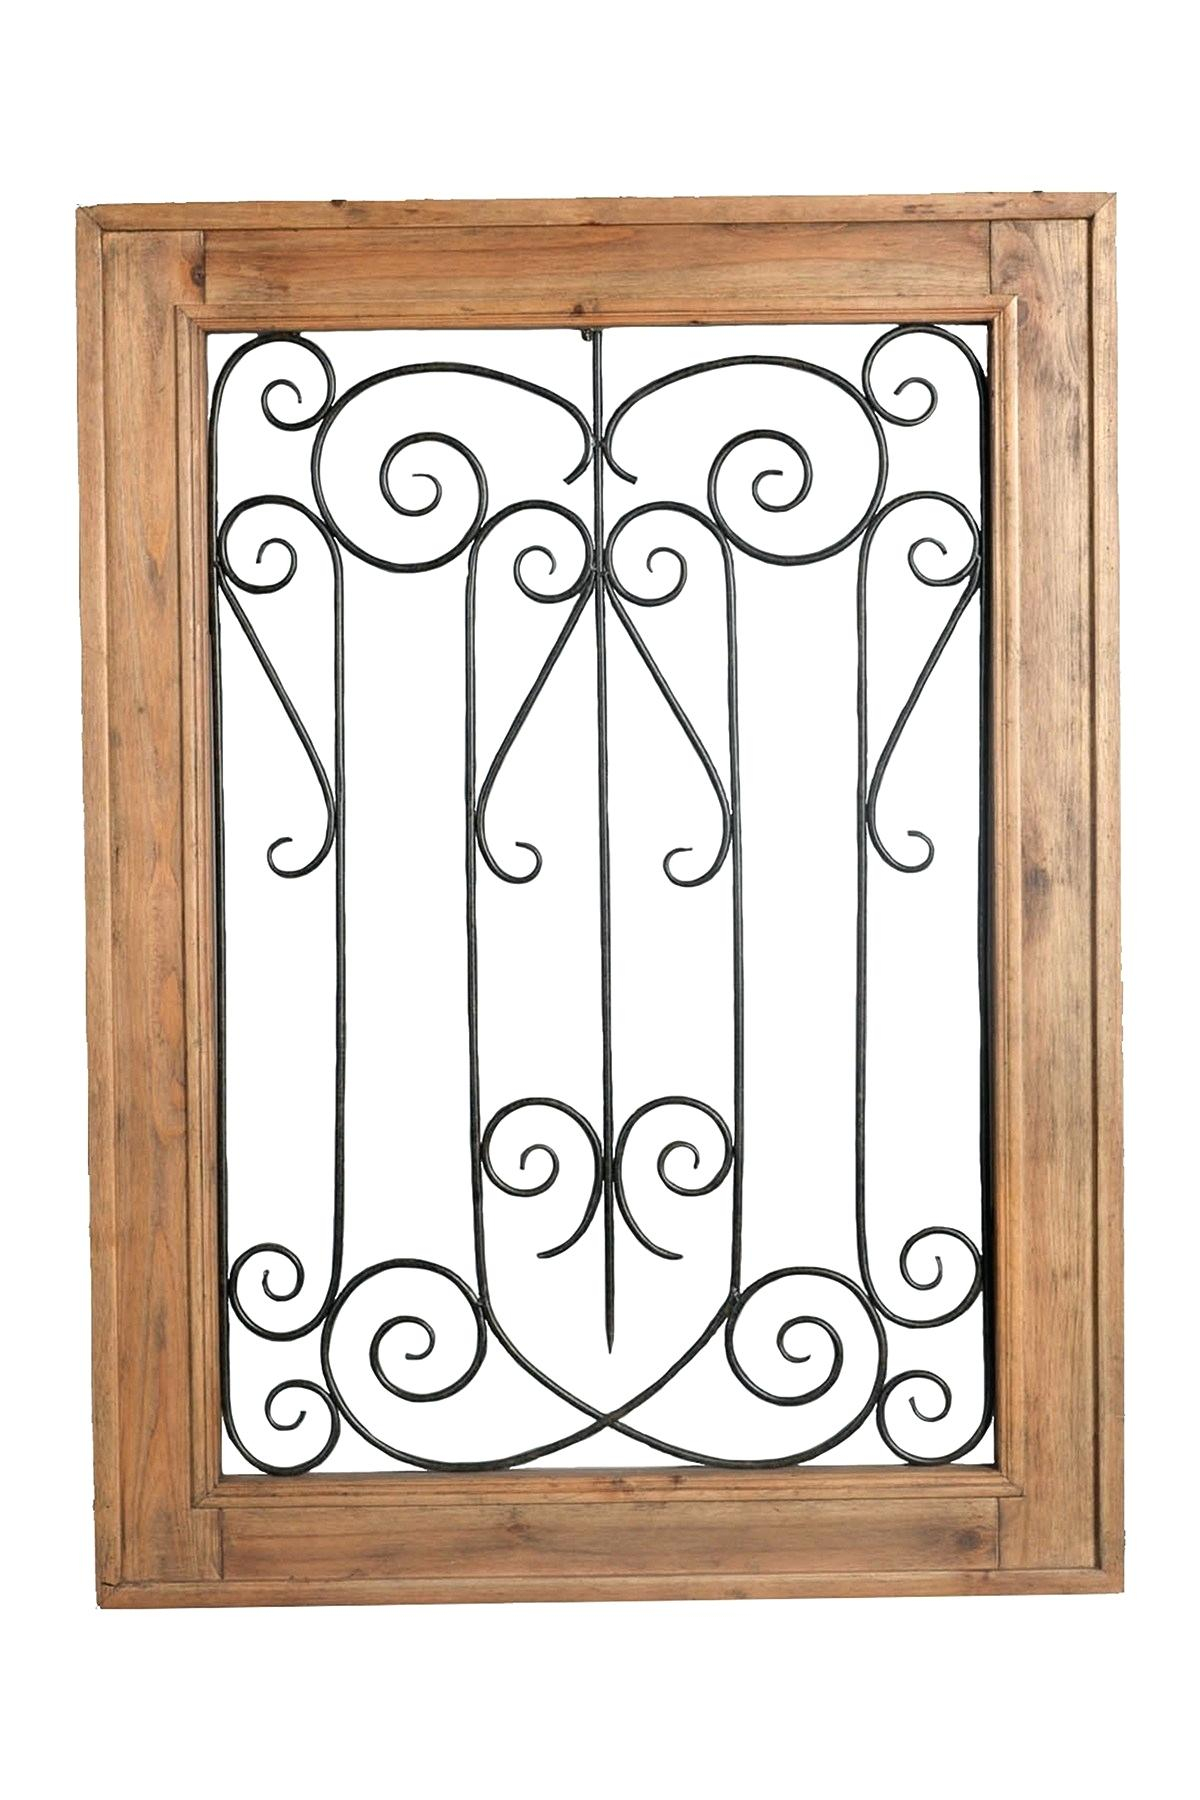 Preferred Ornamental Wood And Metal Scroll Wall Decor With Regard To Metal Scroll Wall Decor – Oknews (View 15 of 20)